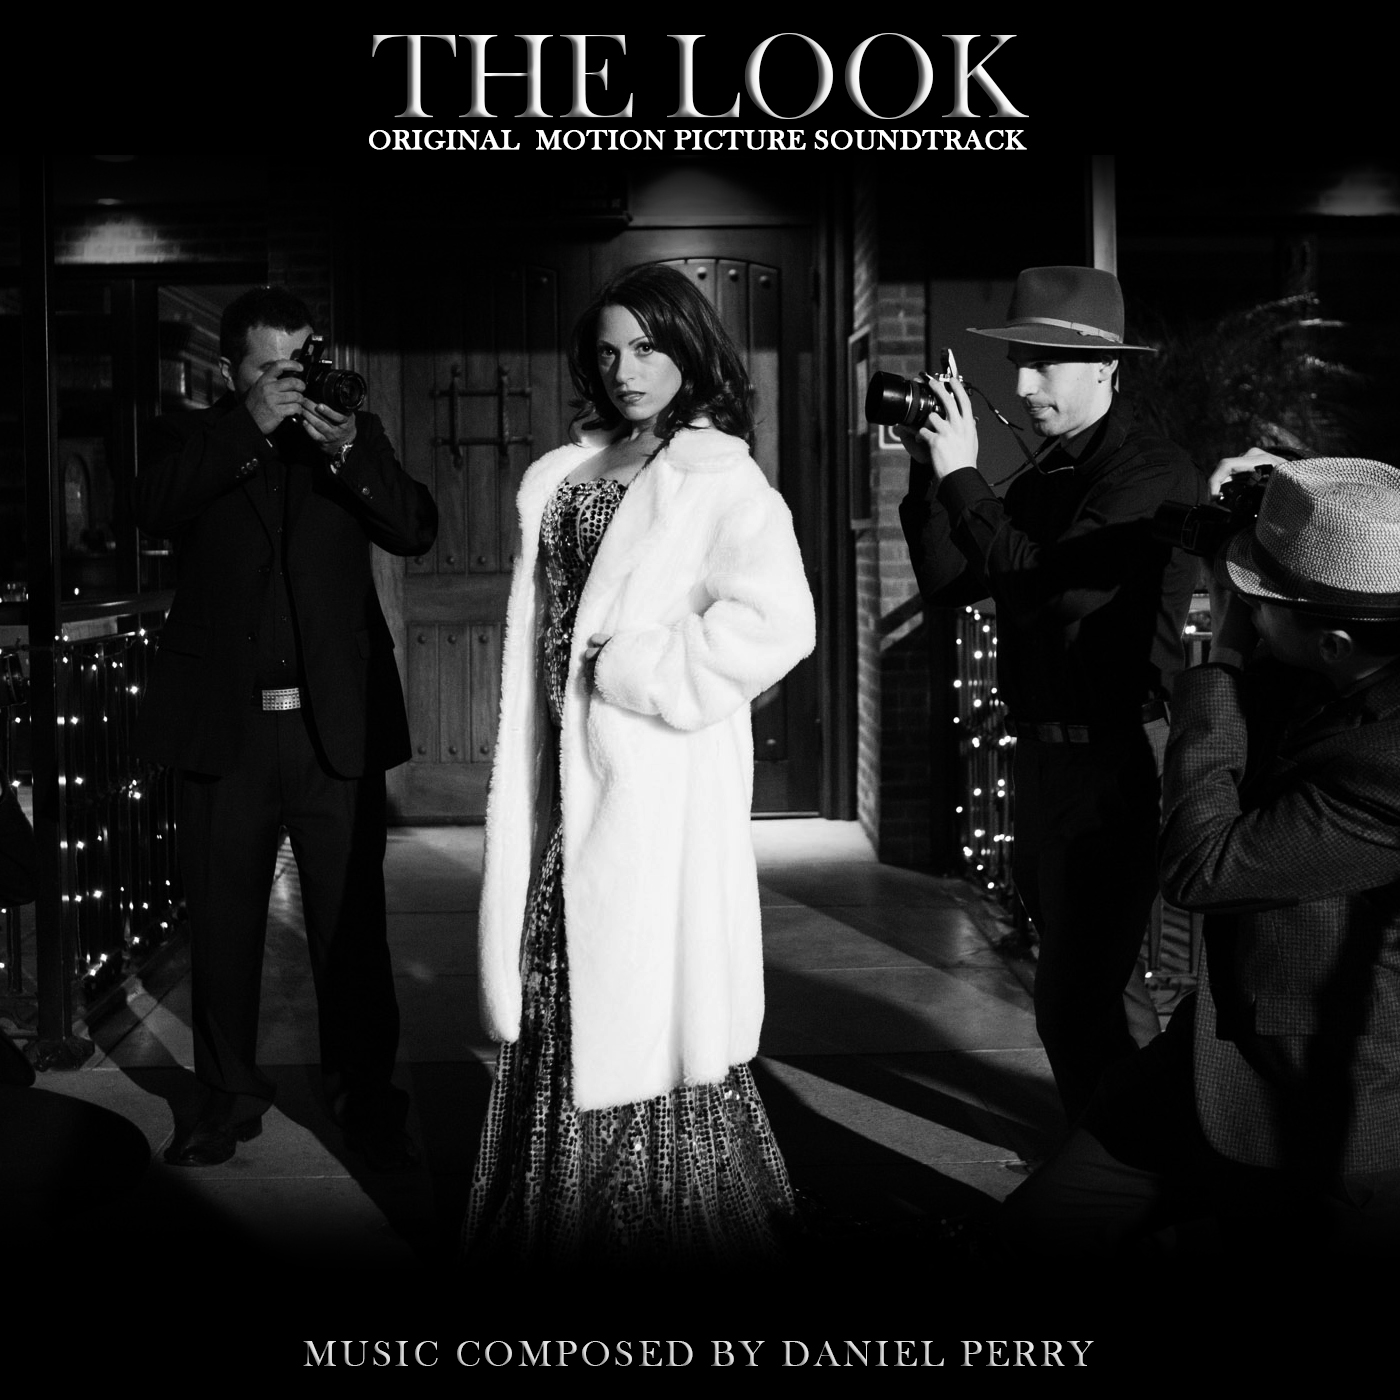 Album Cover of the soundtrack release from the look